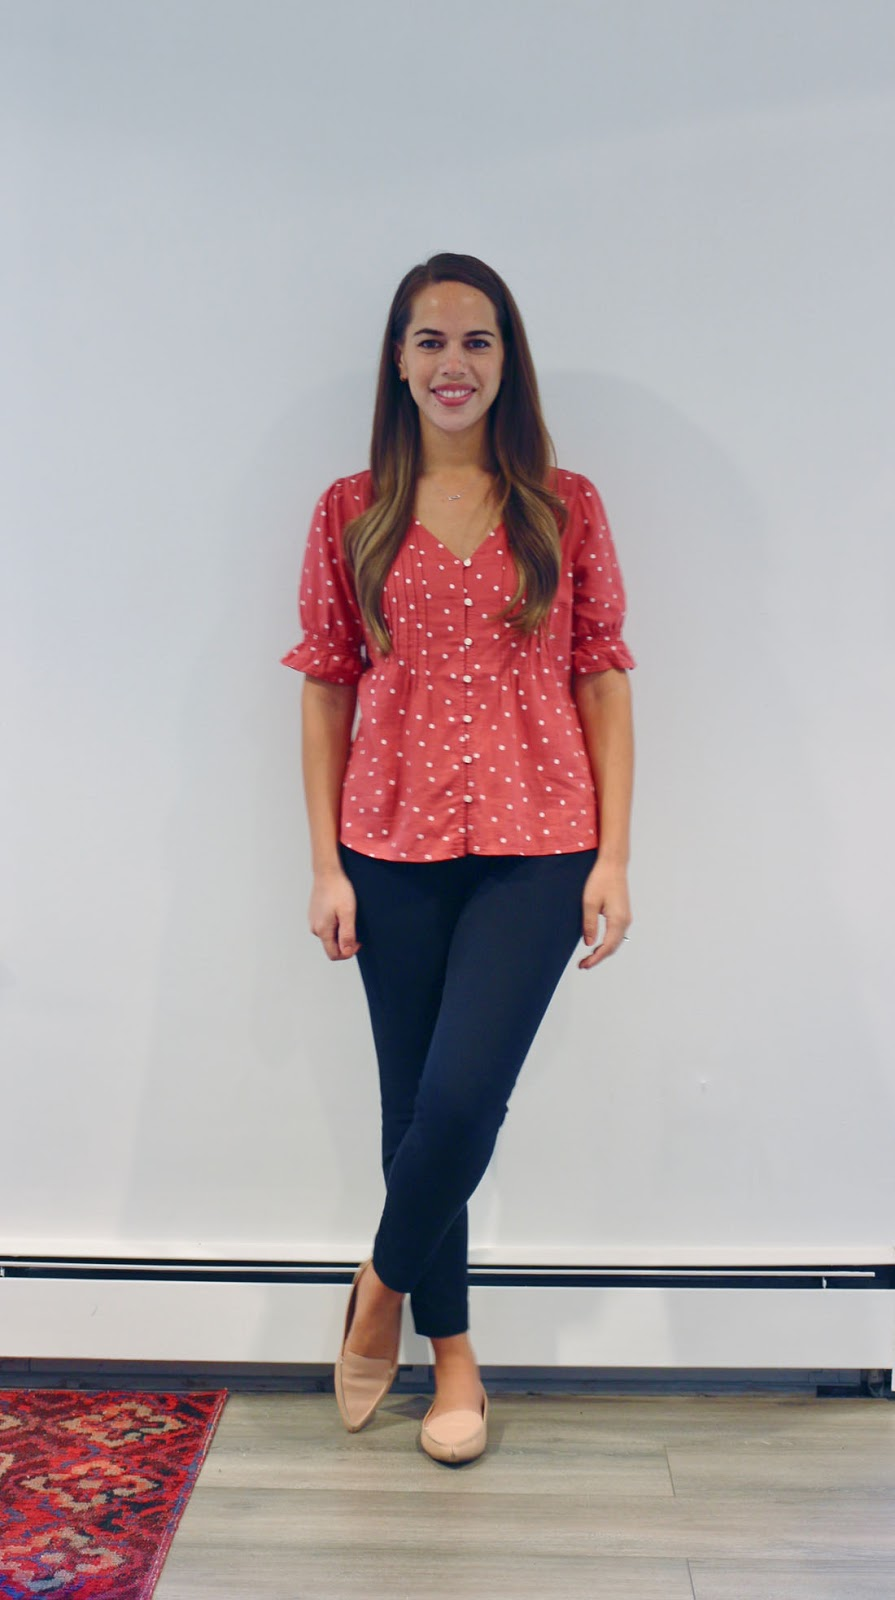 Jules in Flats -  Polka Dot Button Front Top (Business Casual Summer Workwear on a Budget)